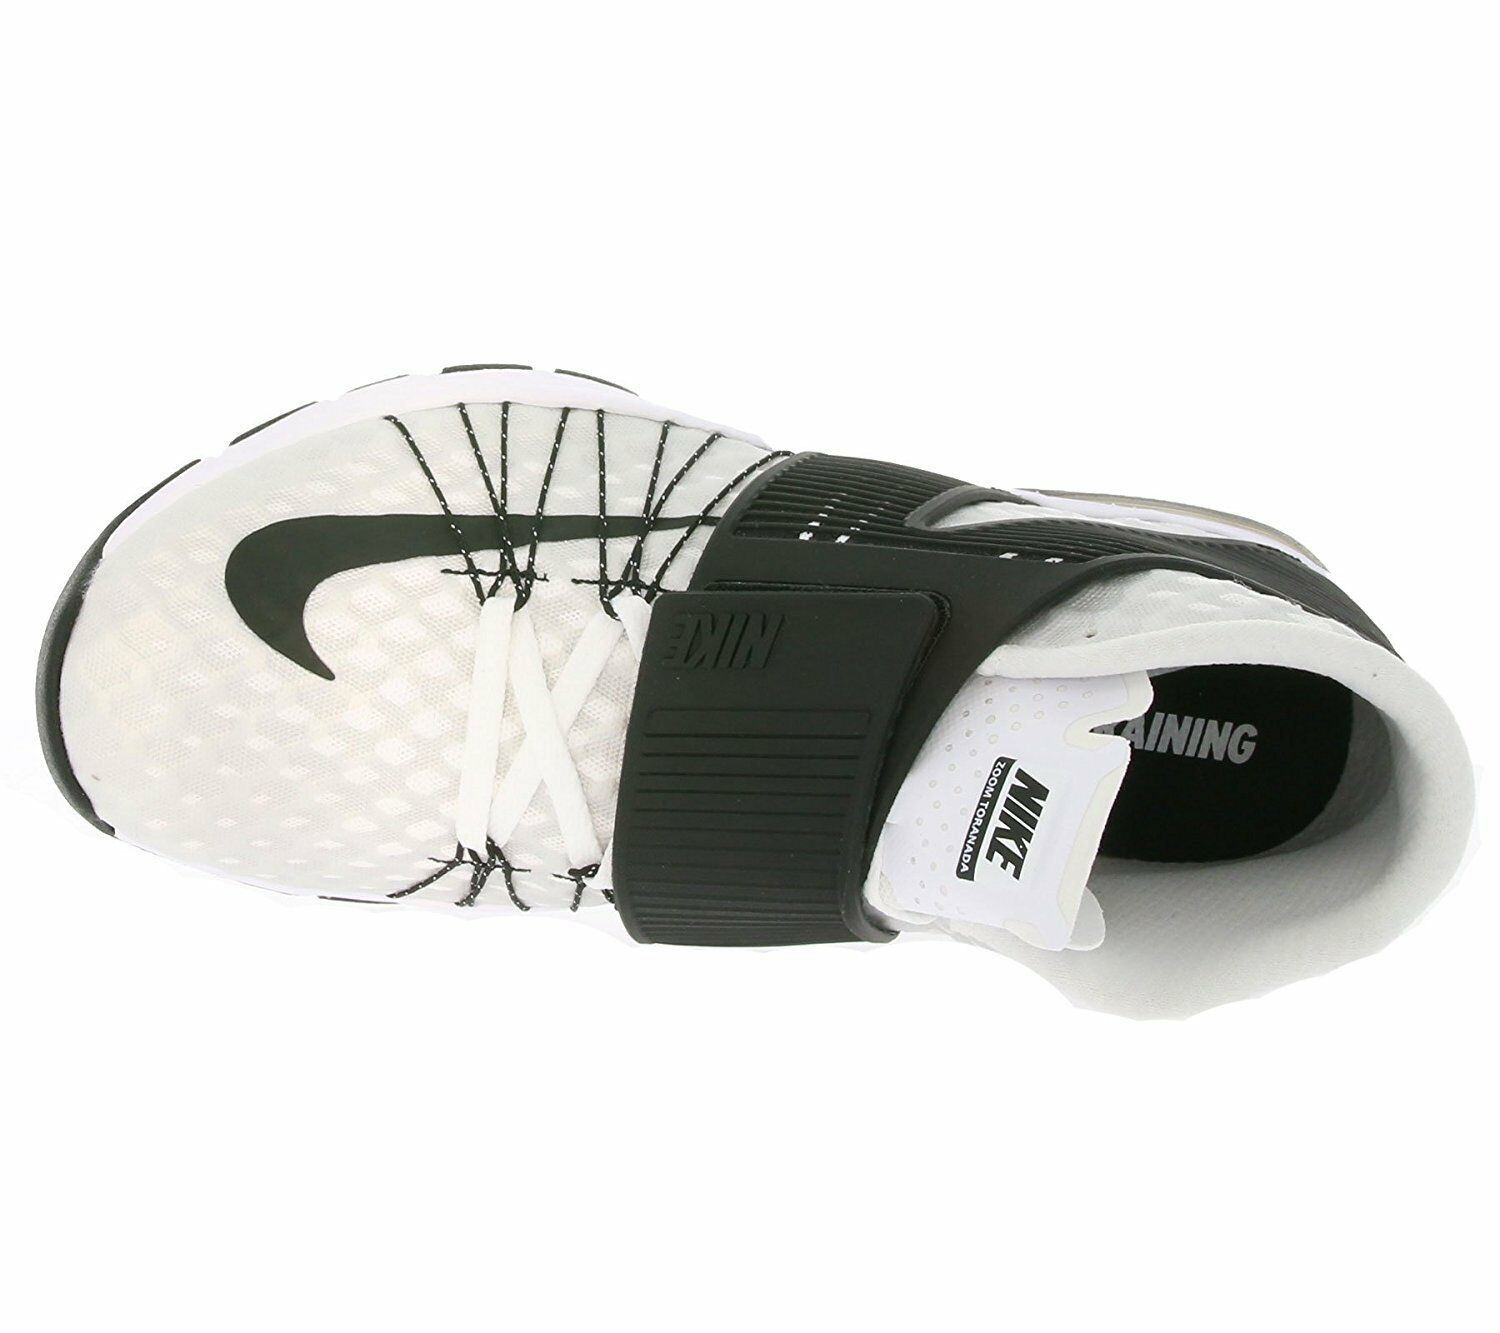 2479bfd2ba417 Nike Zoom Train Toranada Men's SNEAKERS White/black Size 10 835657